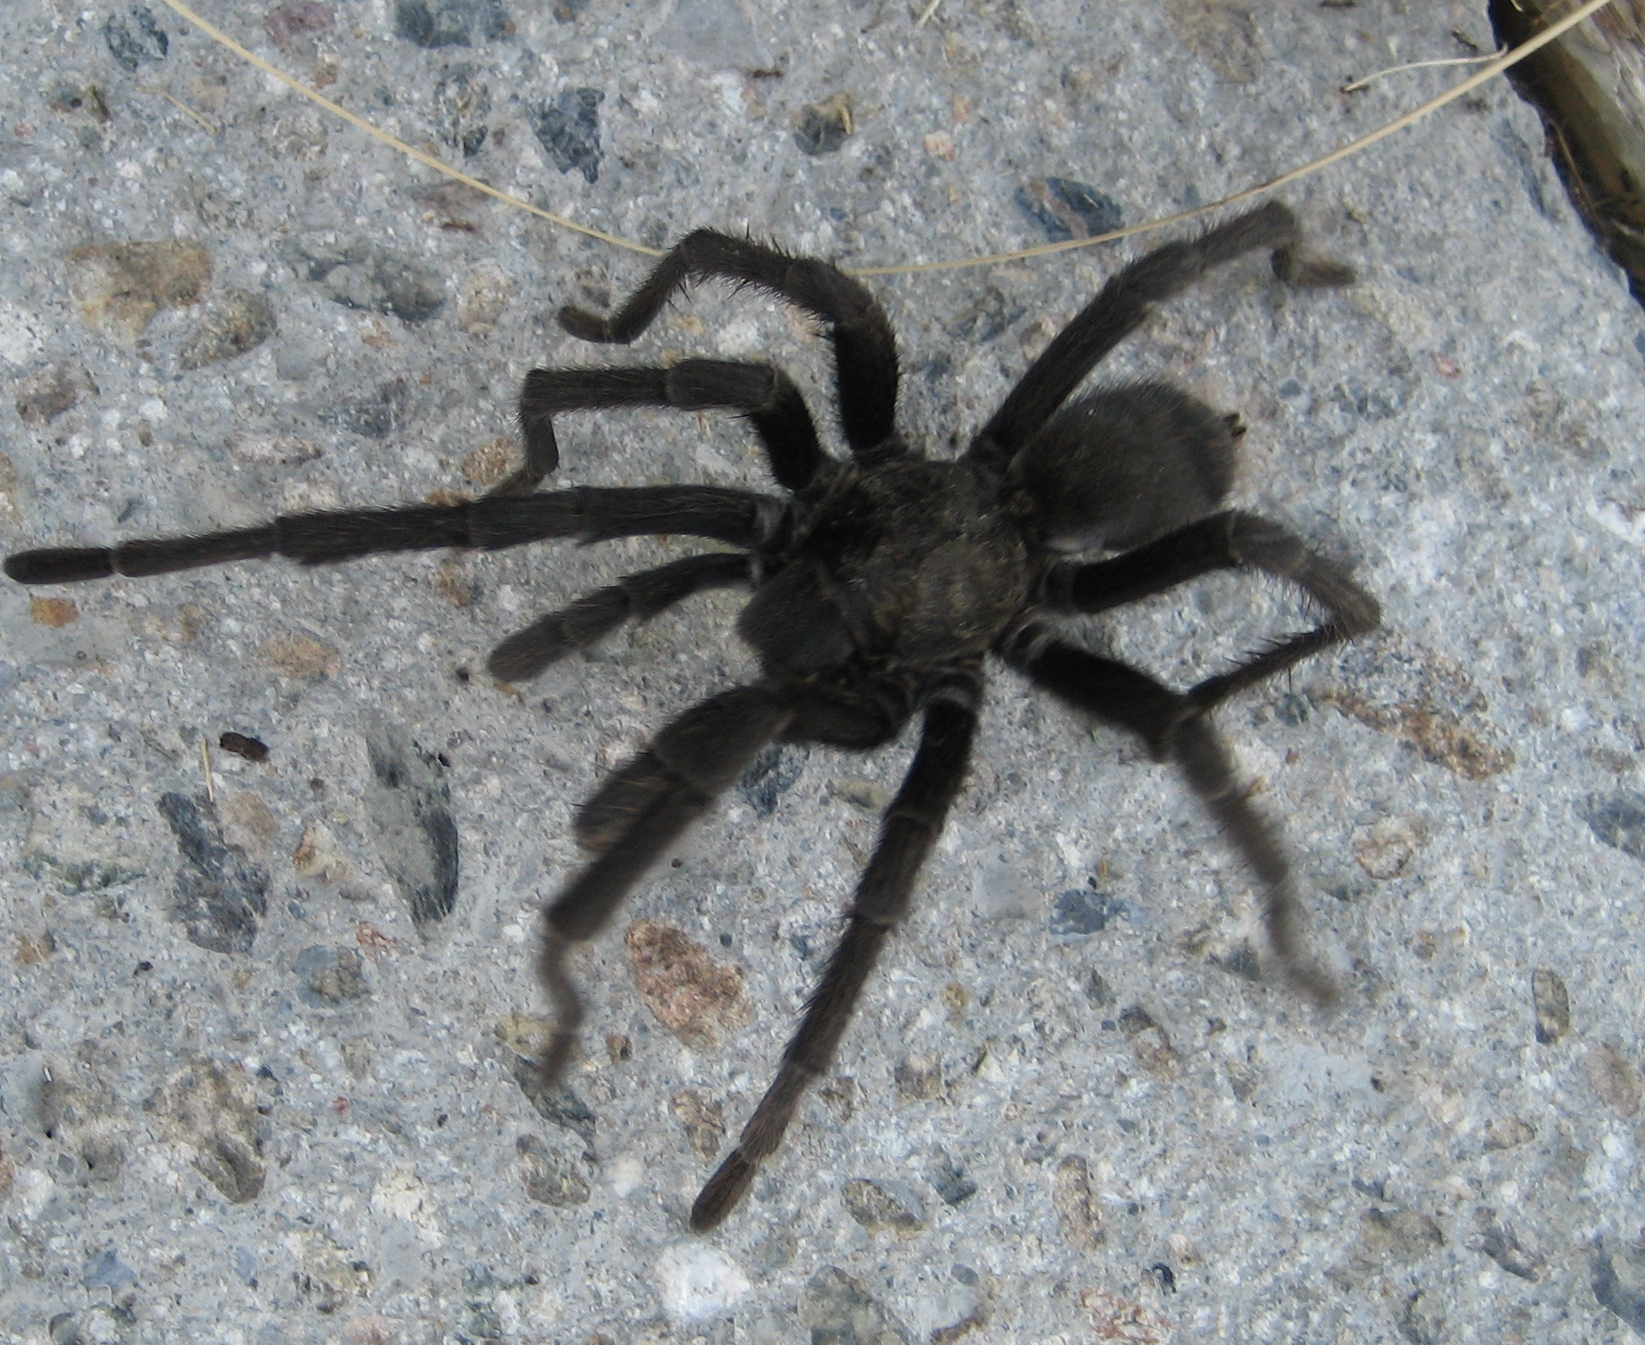 lucky dodo: another black hairy spider